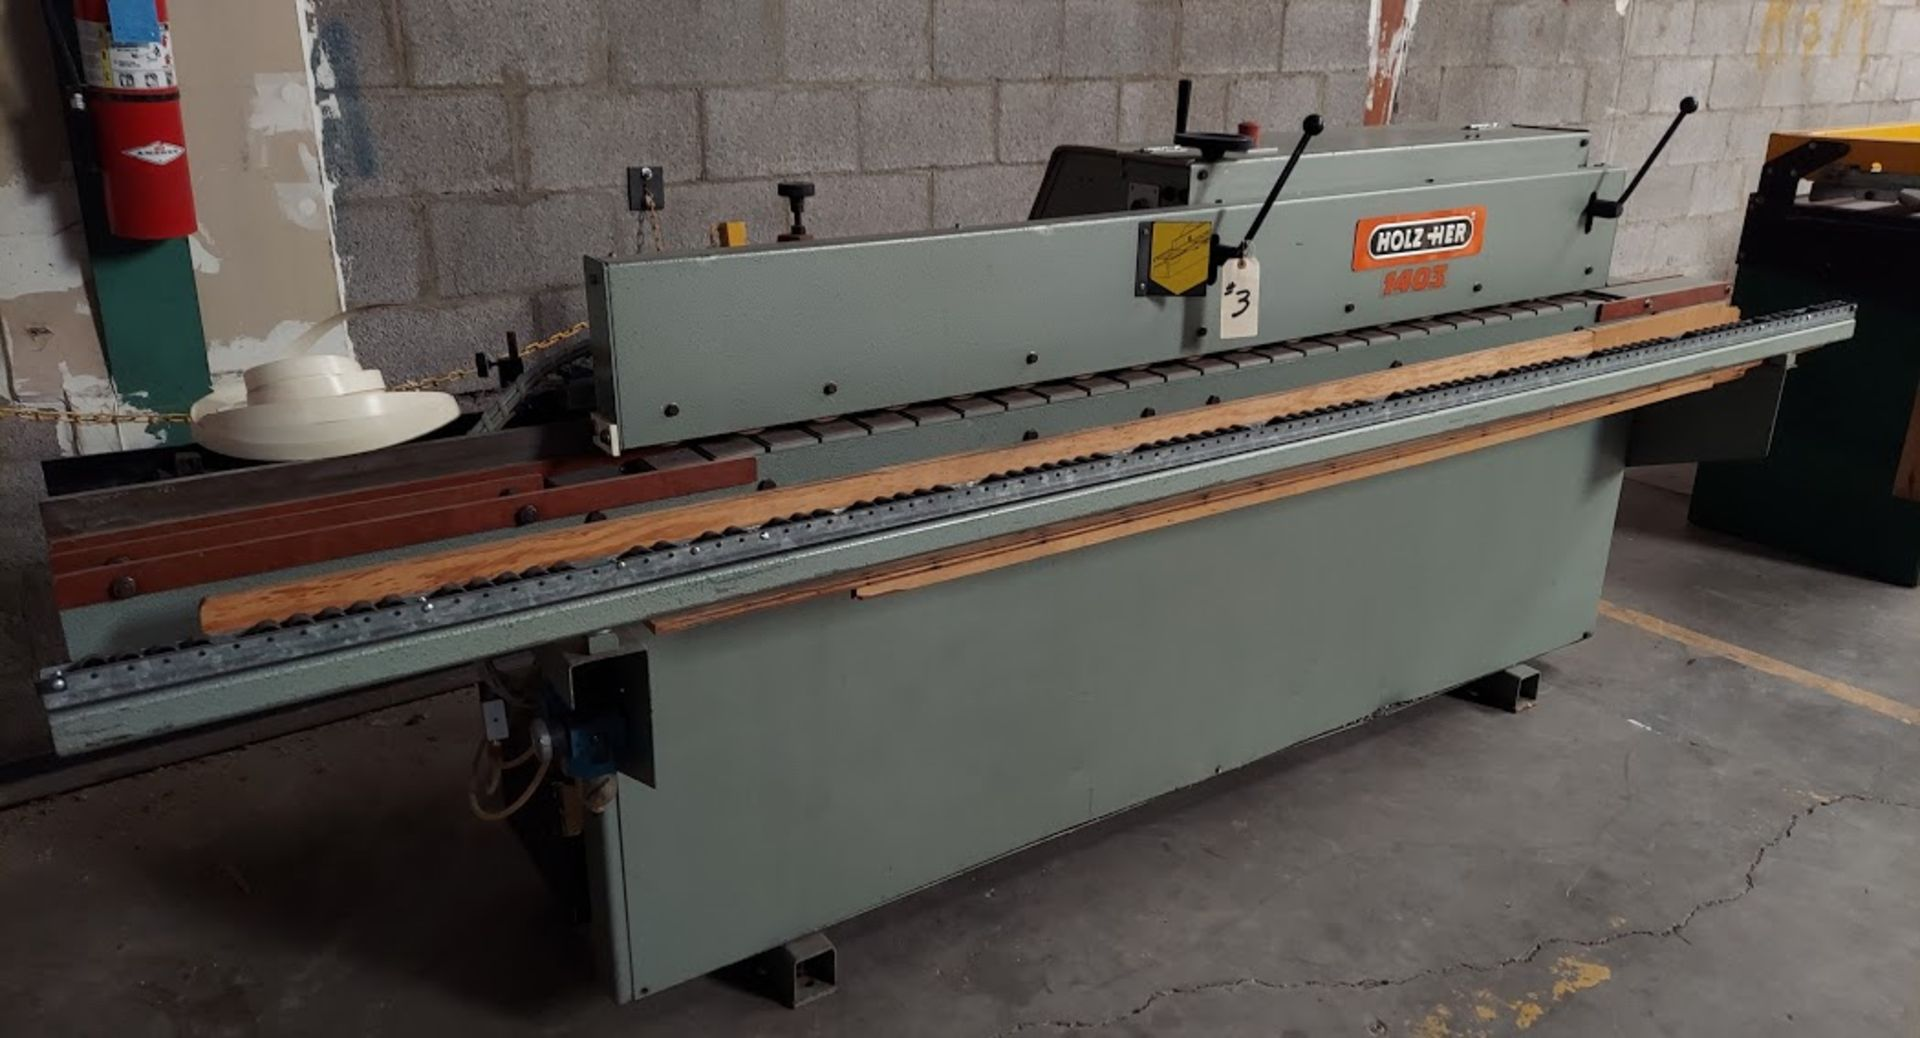 Holz Her 1403 Edgebander, 230 Volts 3 Phase, Auto feed, Cartridge Glue System, Double End Trim,